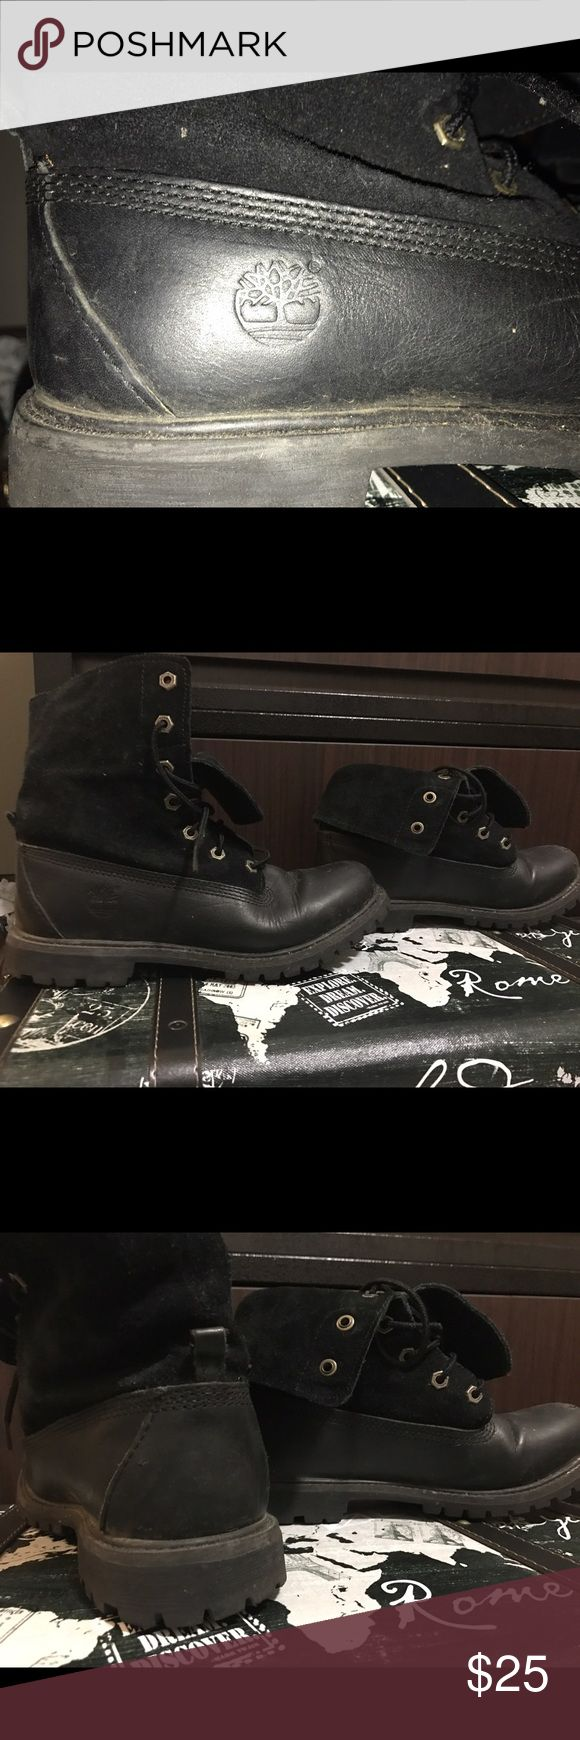 Timberland boots Used original timberland boots. With obvious wear and tear. Very strong shoes Timberland Shoes Combat & Moto Boots